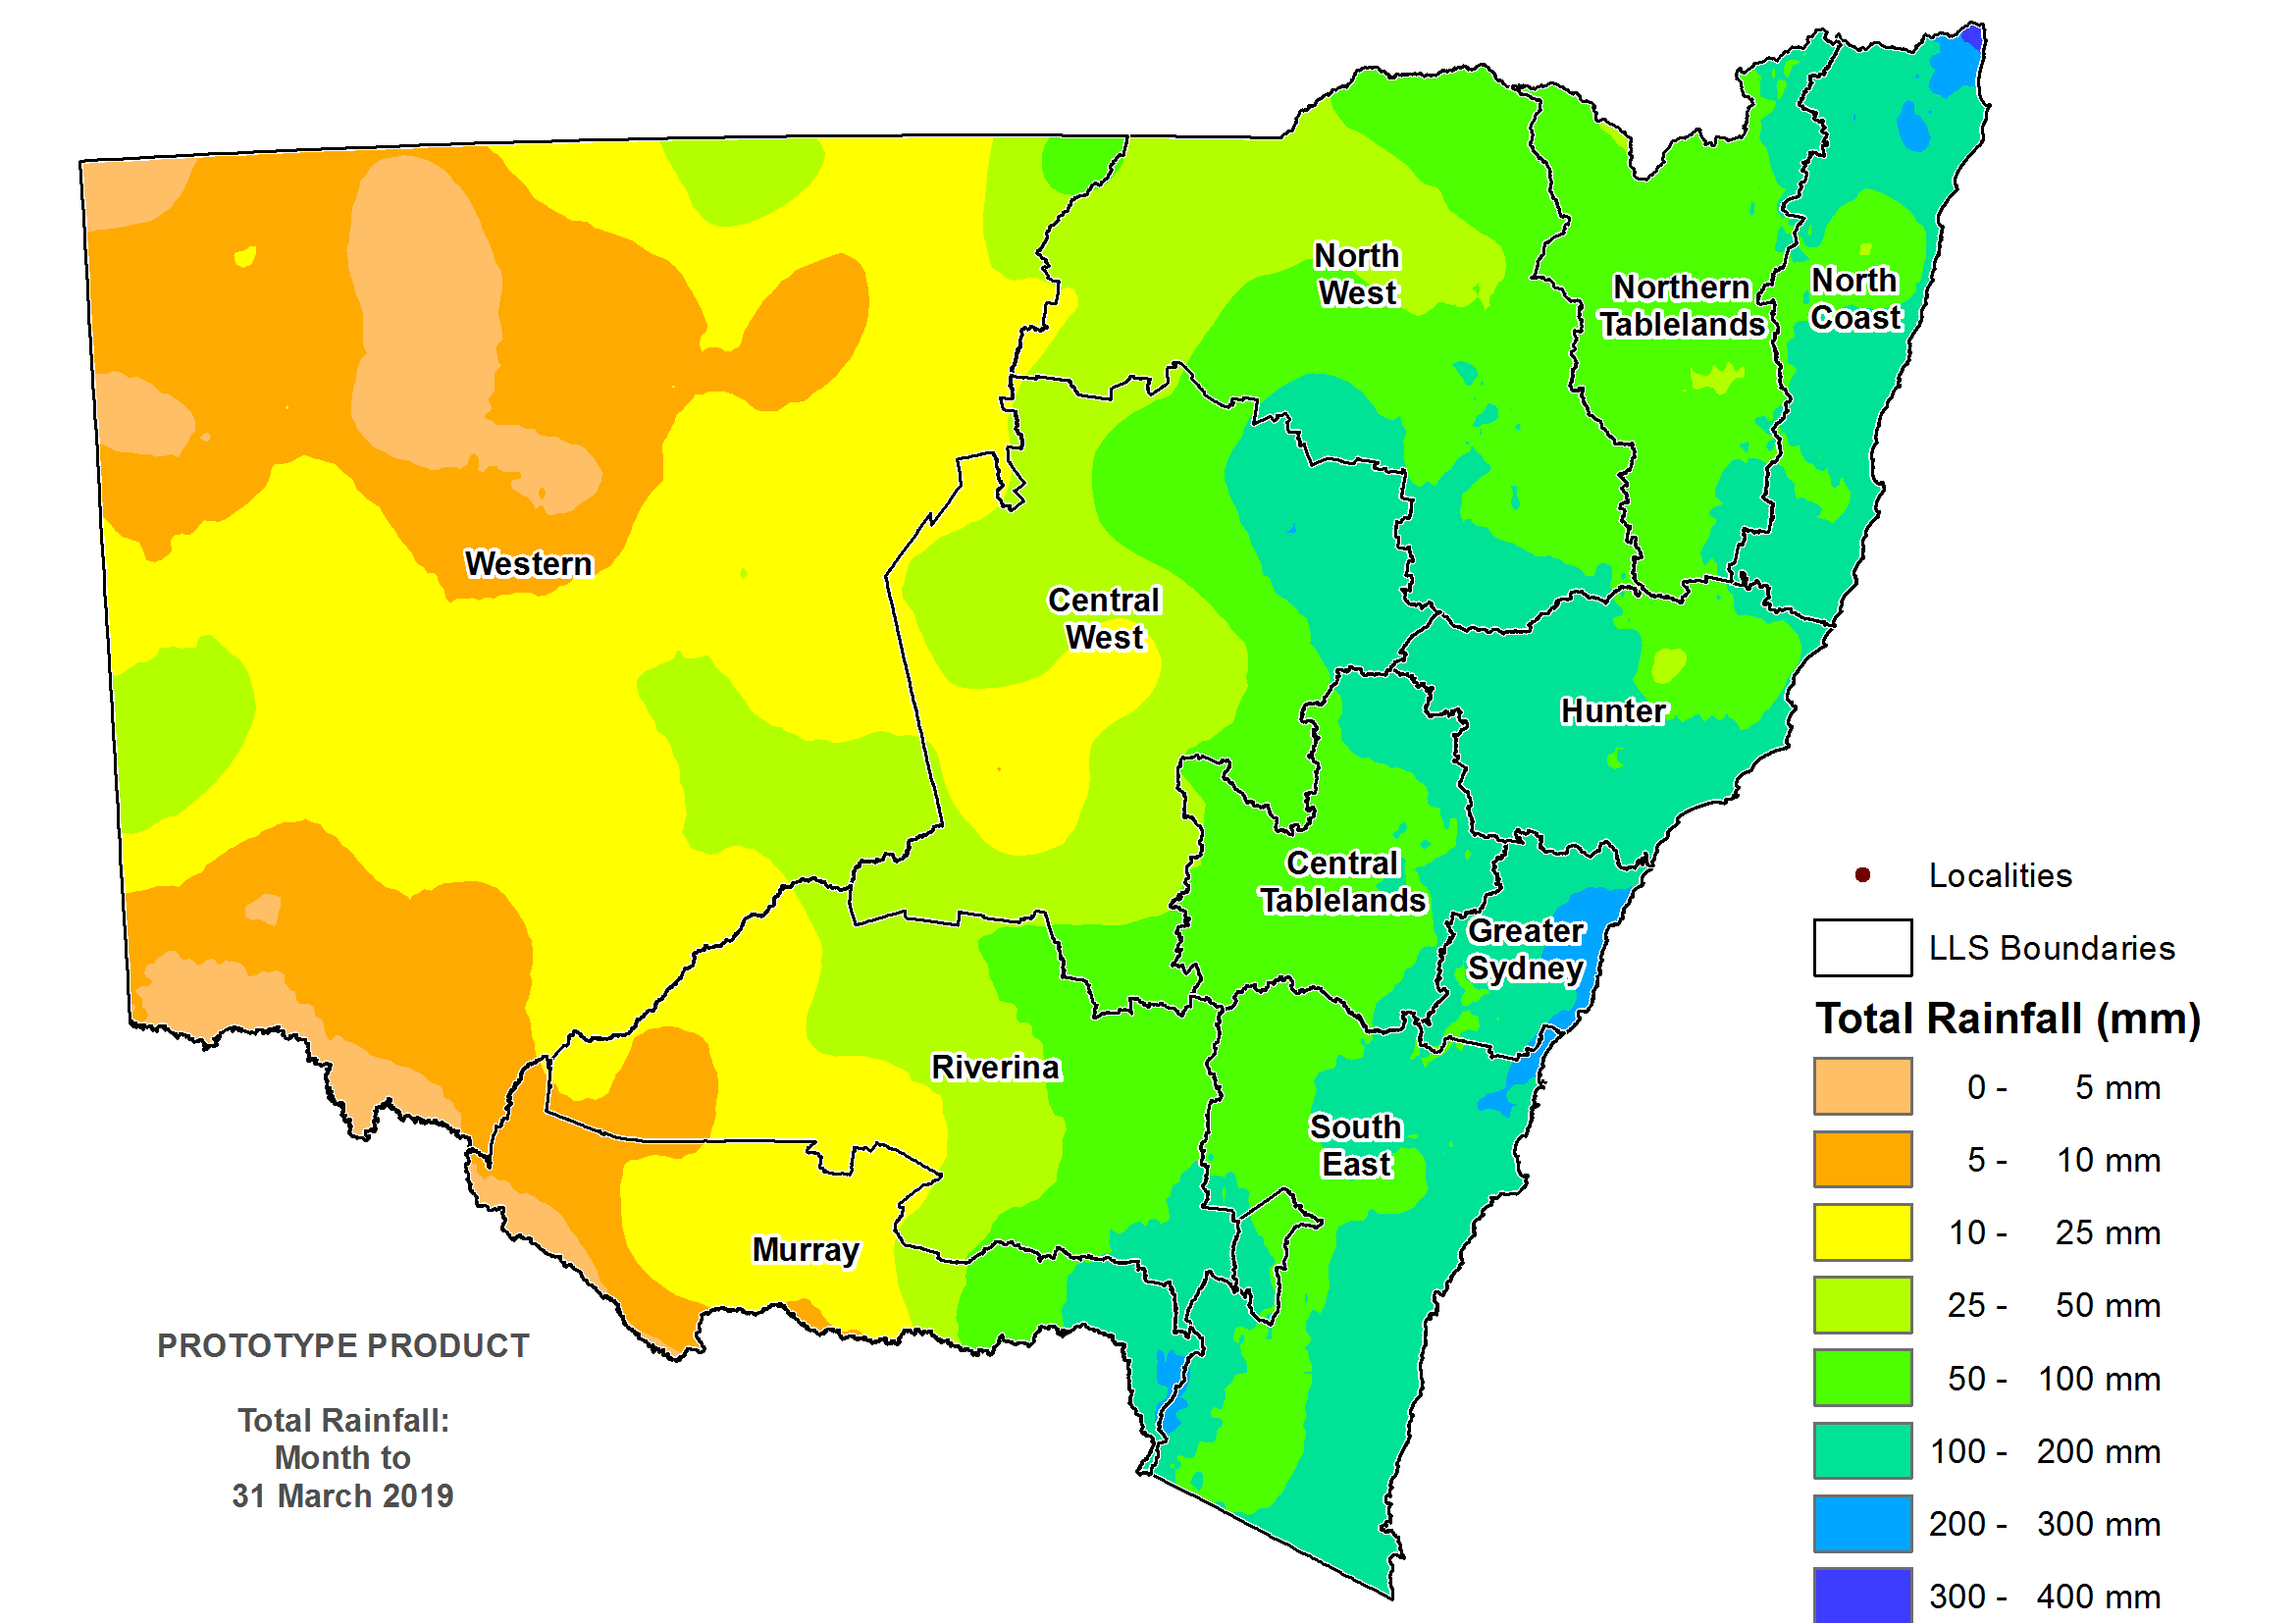 Total rainfall March 2019 - For an accessible explanation of this image contact scott.wallace@dpi.nsw.gov.au